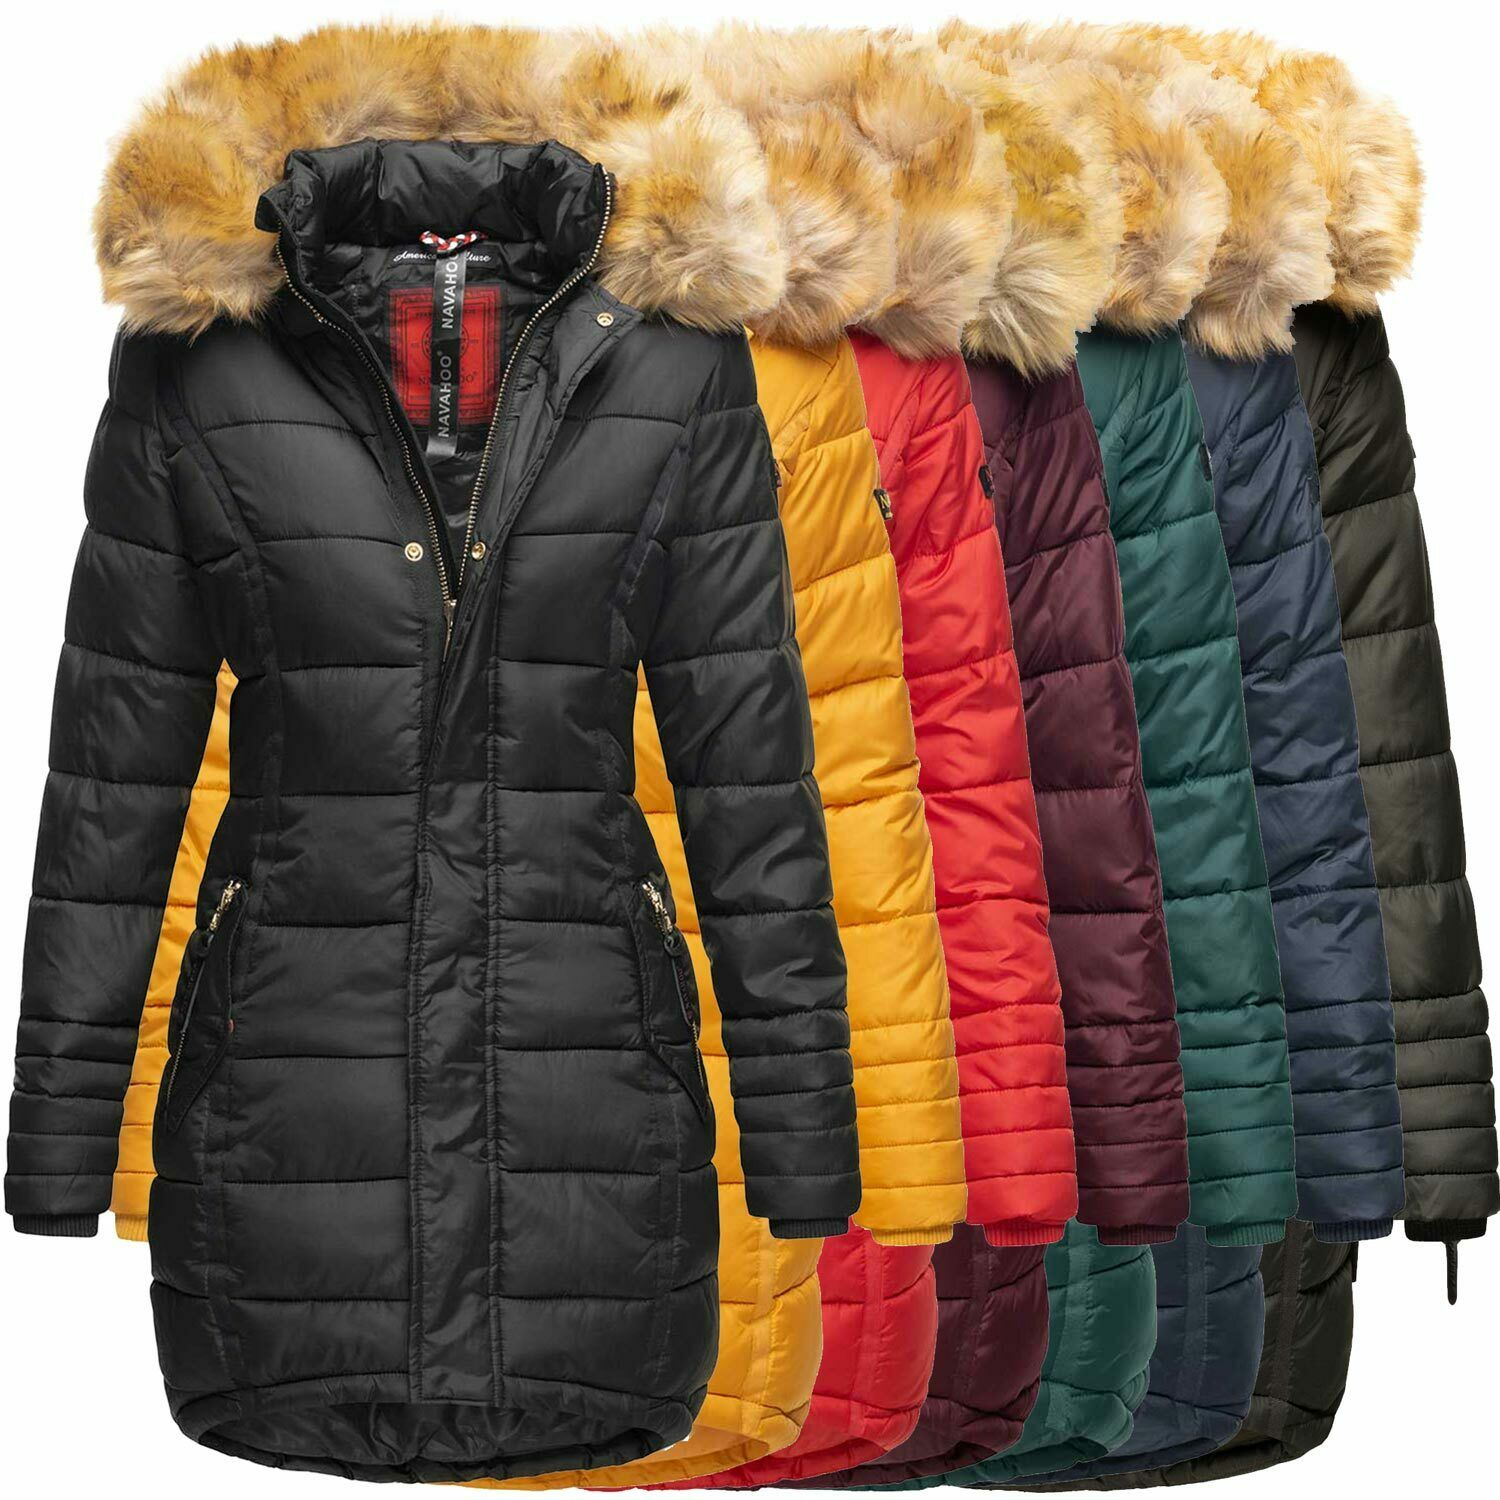 navahoo papaya damen winter jacke steppjacke mantel parka gesteppt warm b374 eur 44 90. Black Bedroom Furniture Sets. Home Design Ideas